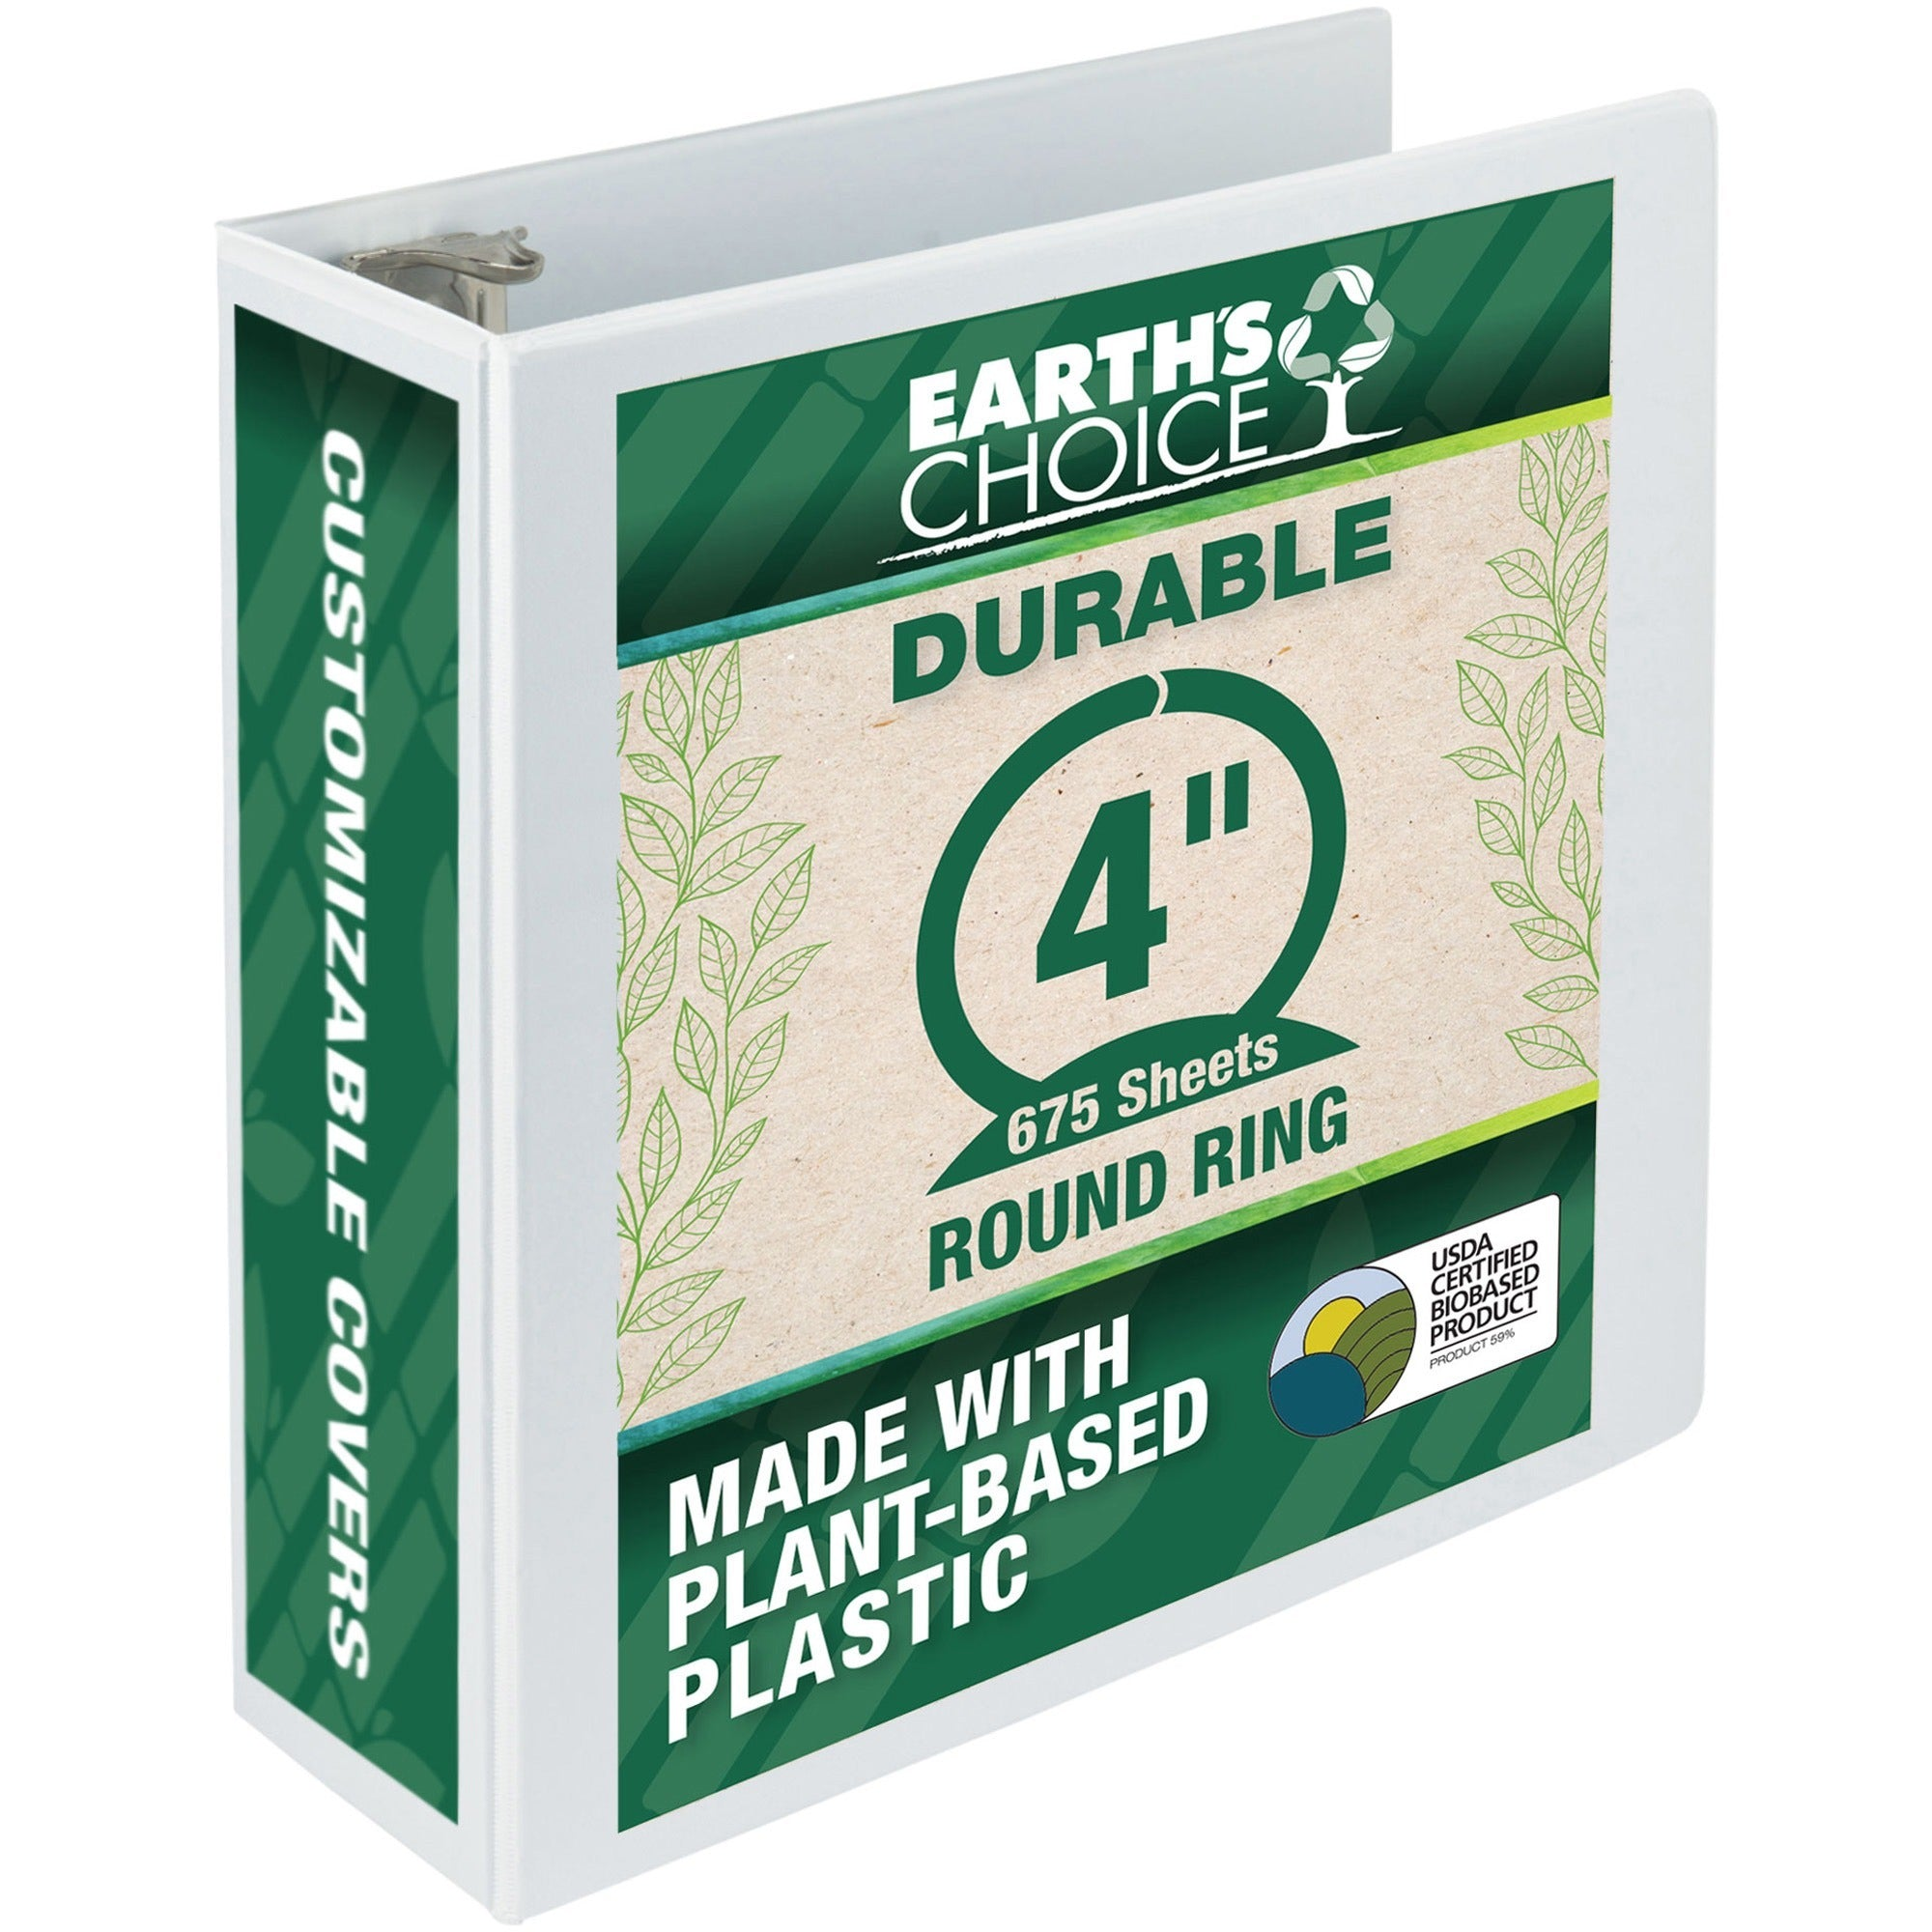 Samsill Earth's Choice Biobased USDA Certified View Binder